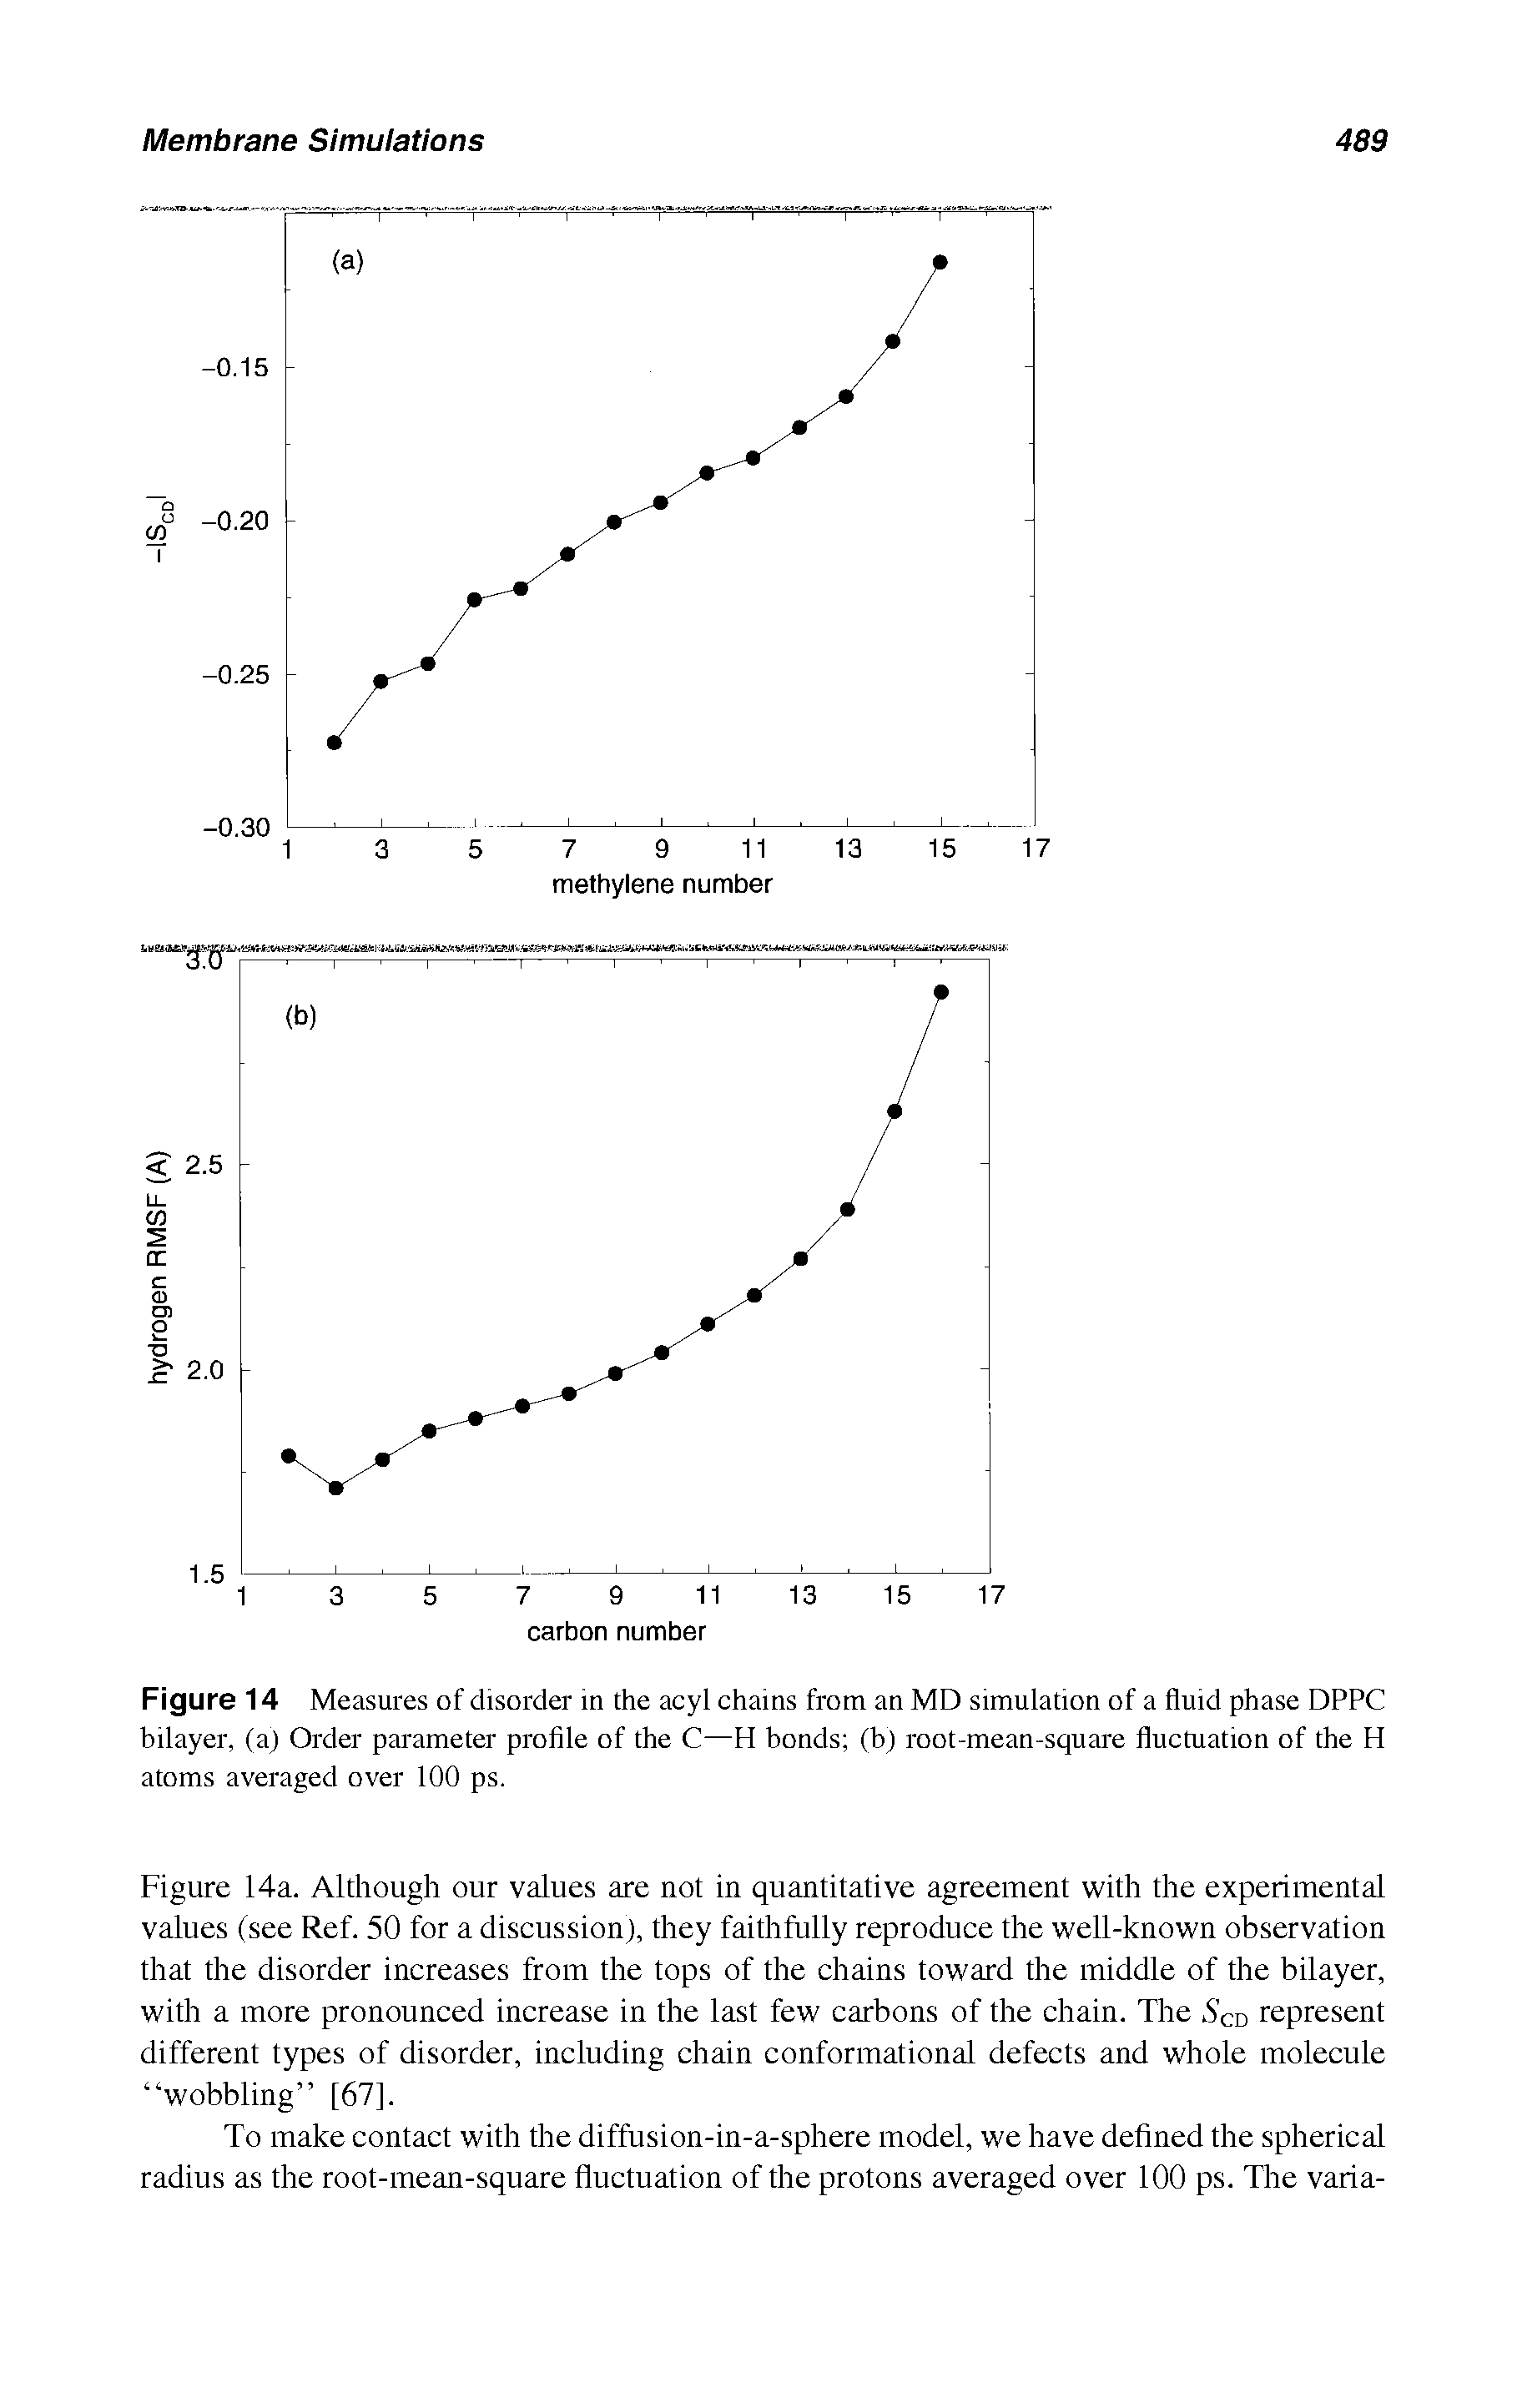 "Figure 14a. Although our values are not in quantitative agreement with the <a href=""/info/experimental_value"">experimental values</a> (see Ref. 50 for a discussion), they faithfully reproduce the well-known observation that the <a href=""/info/disorder_increase"">disorder increases</a> from the tops of the chains toward the middle of the bilayer, with a more pronounced increase in the last few carbons of the chain. The. S cd represent <a href=""/info/different_types_of_pha"">different types</a> of disorder, including chain conformational defects and whole molecule wobbling [67]."